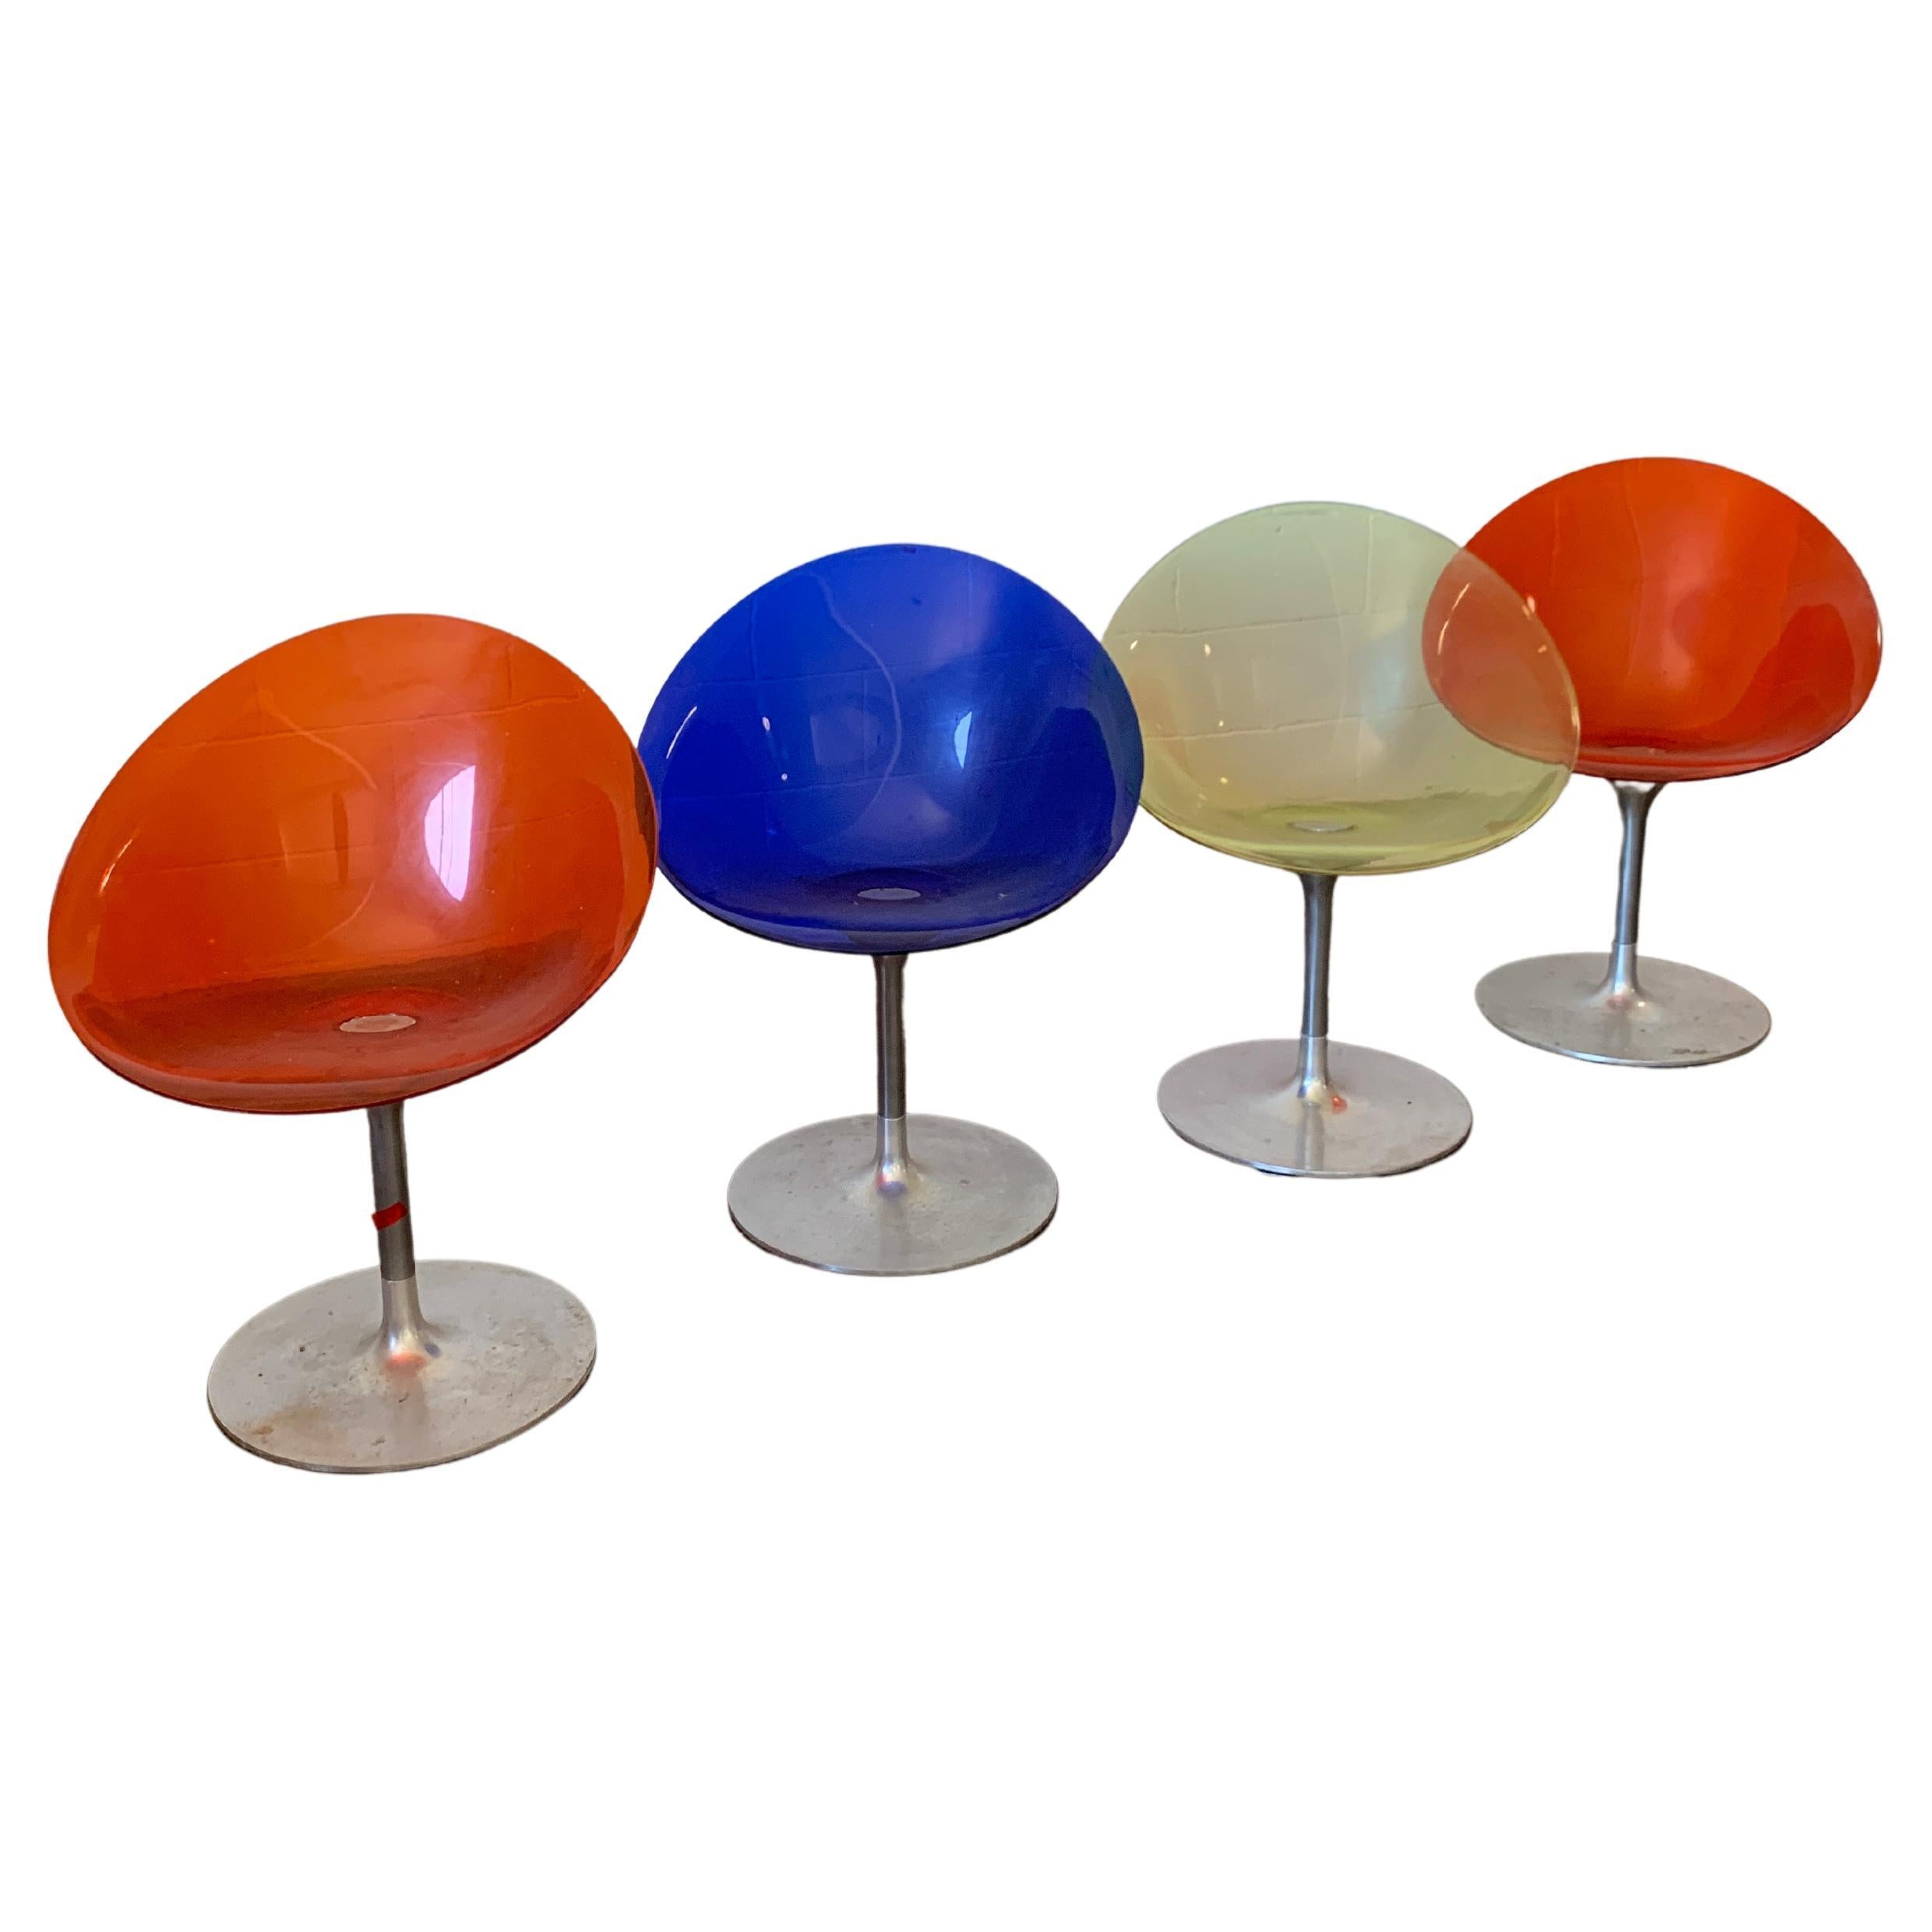 Italian Acrylic Swivel Chairs by Philippe Starck for Kartell